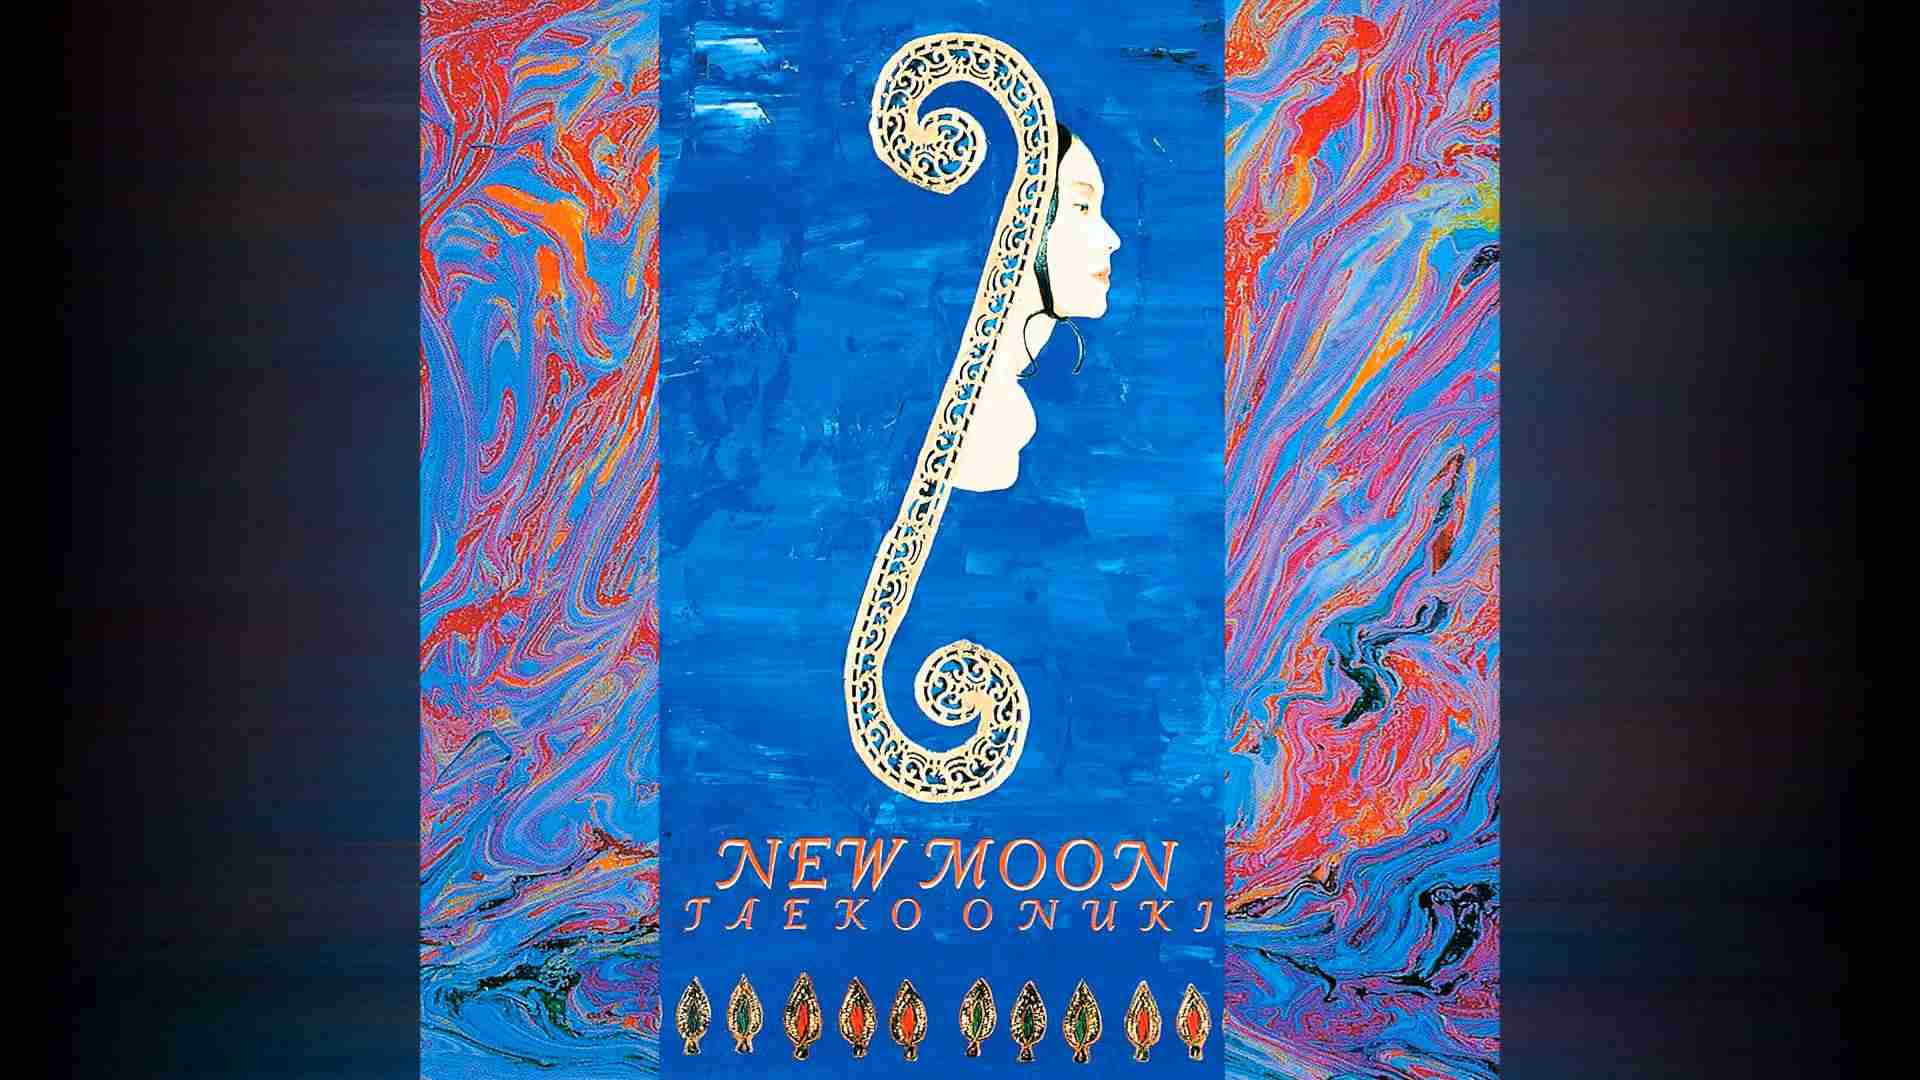 大貫妙子 (Taeko Ōnuki) - 14 - 1990 - New Moon [full album] - YouTube